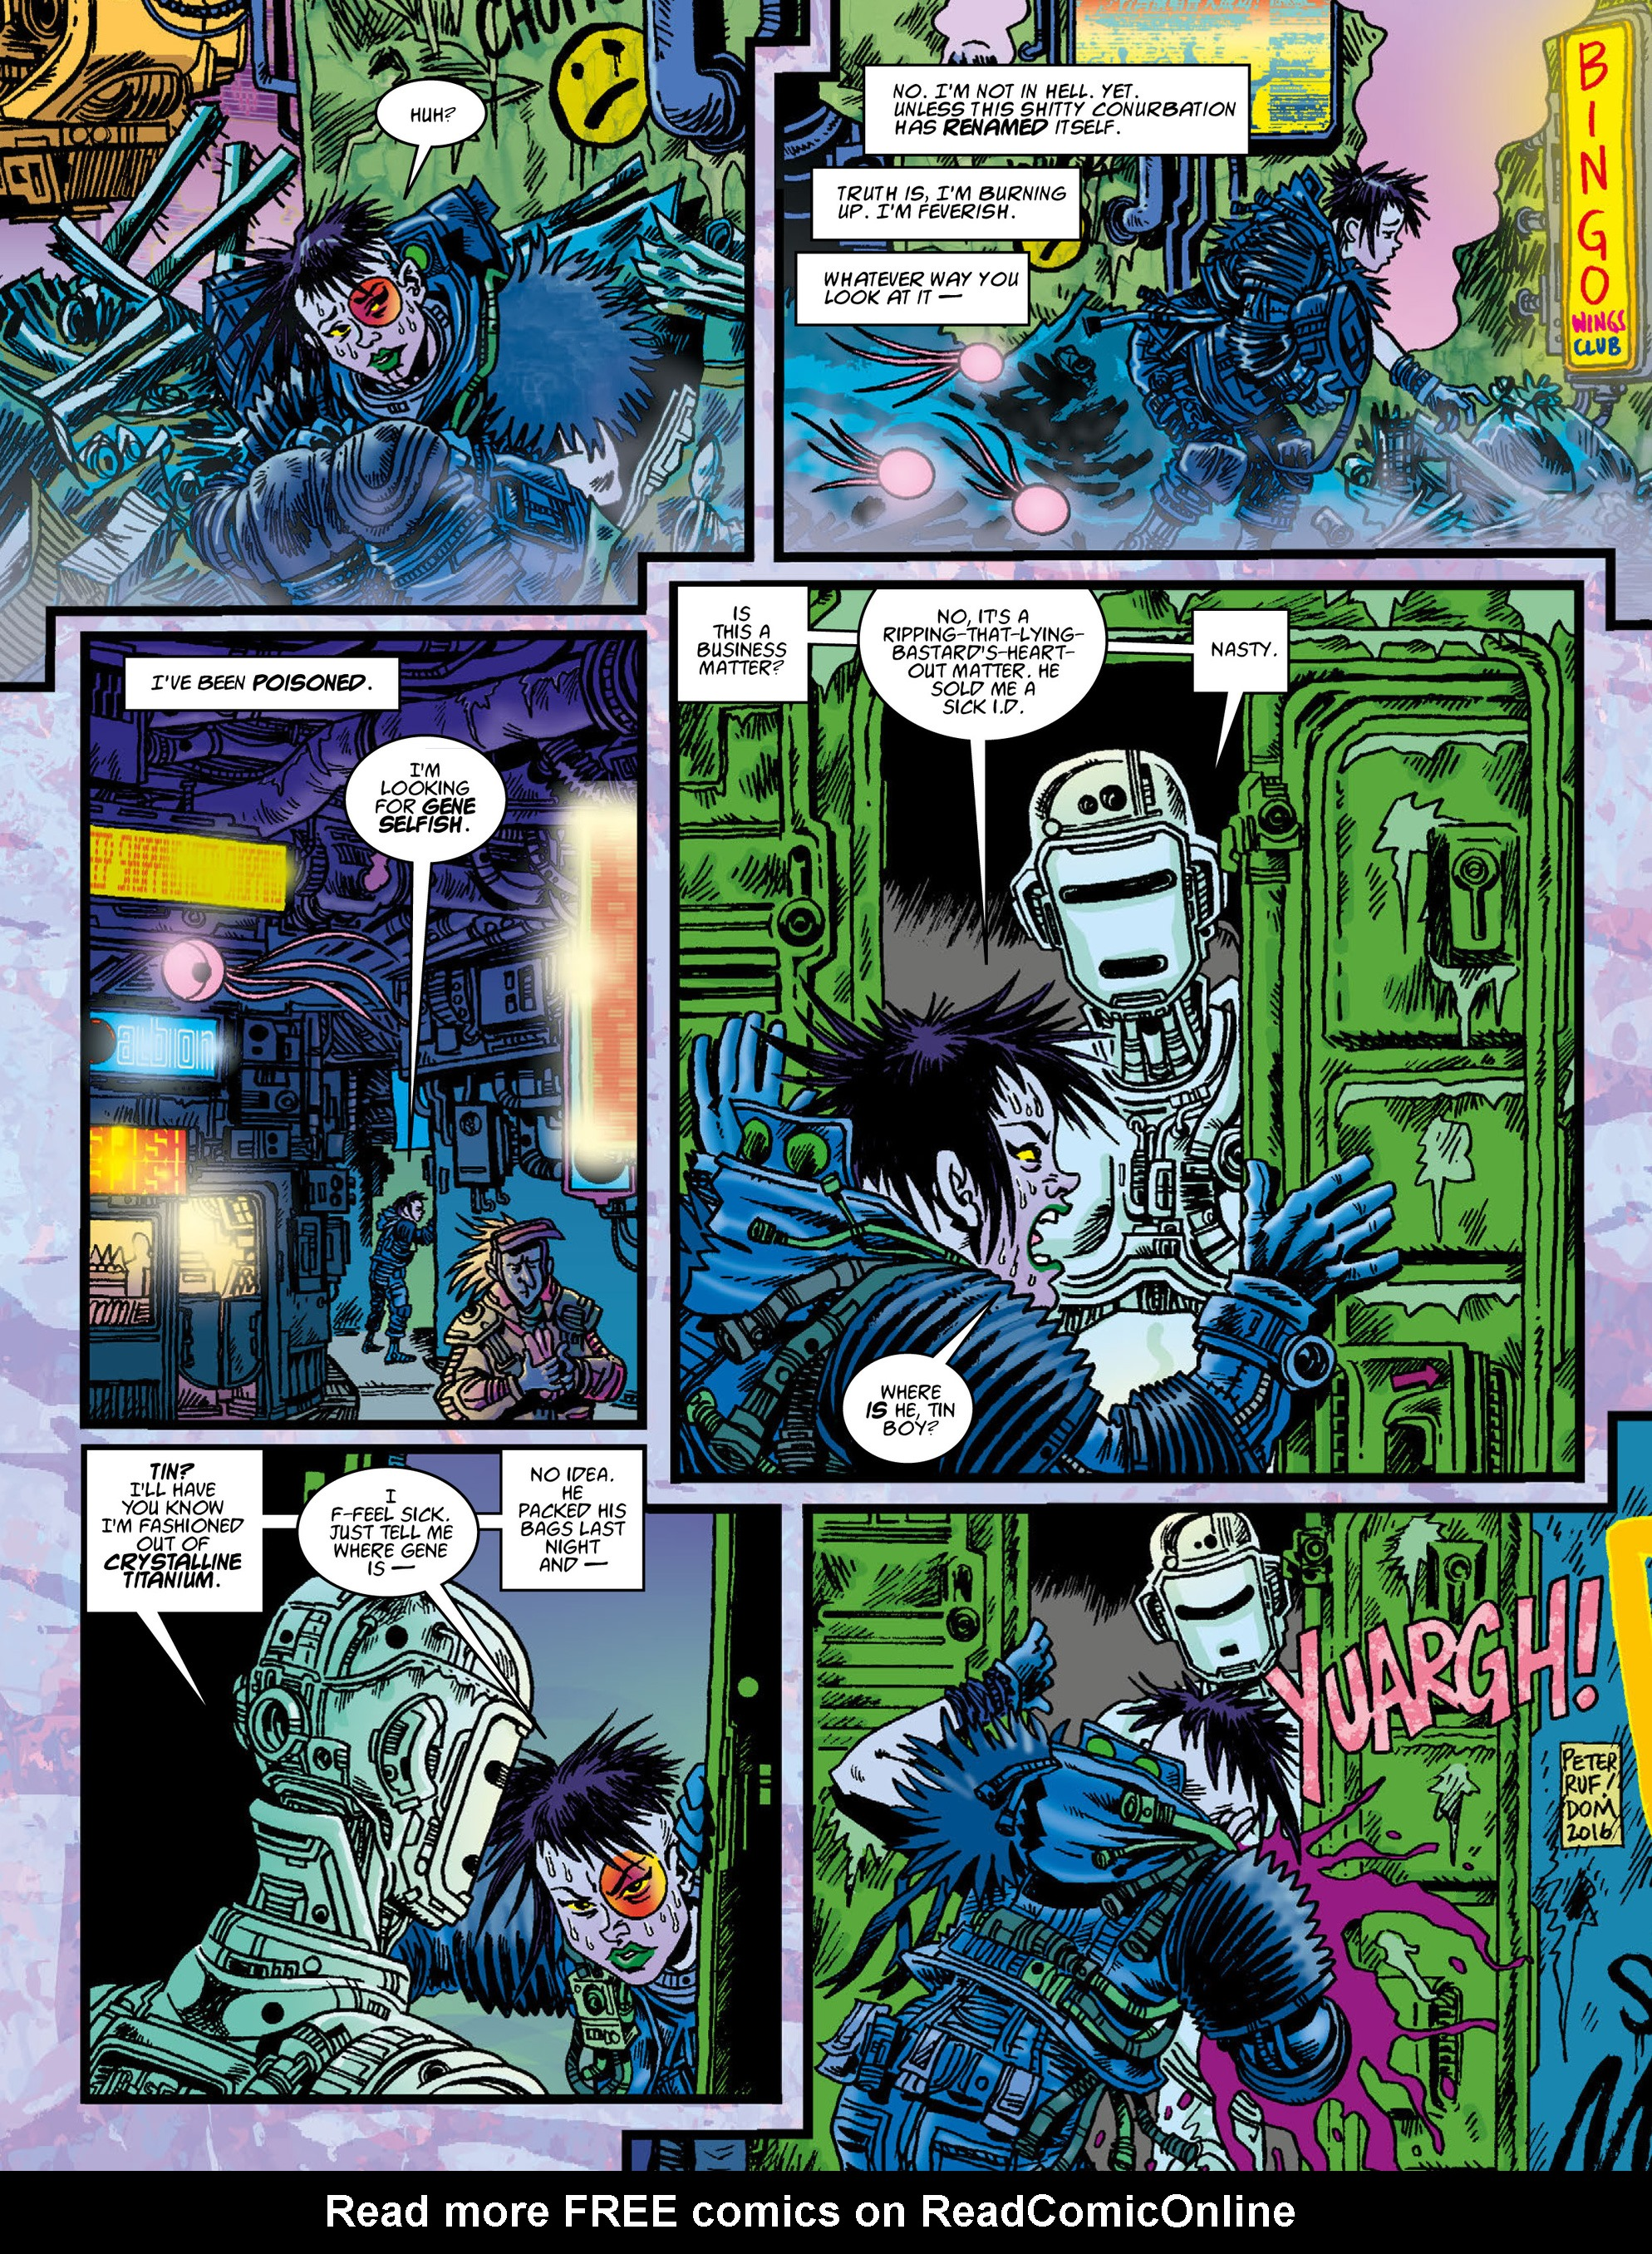 Read online 2000 AD comic -  Issue #2002 - 25